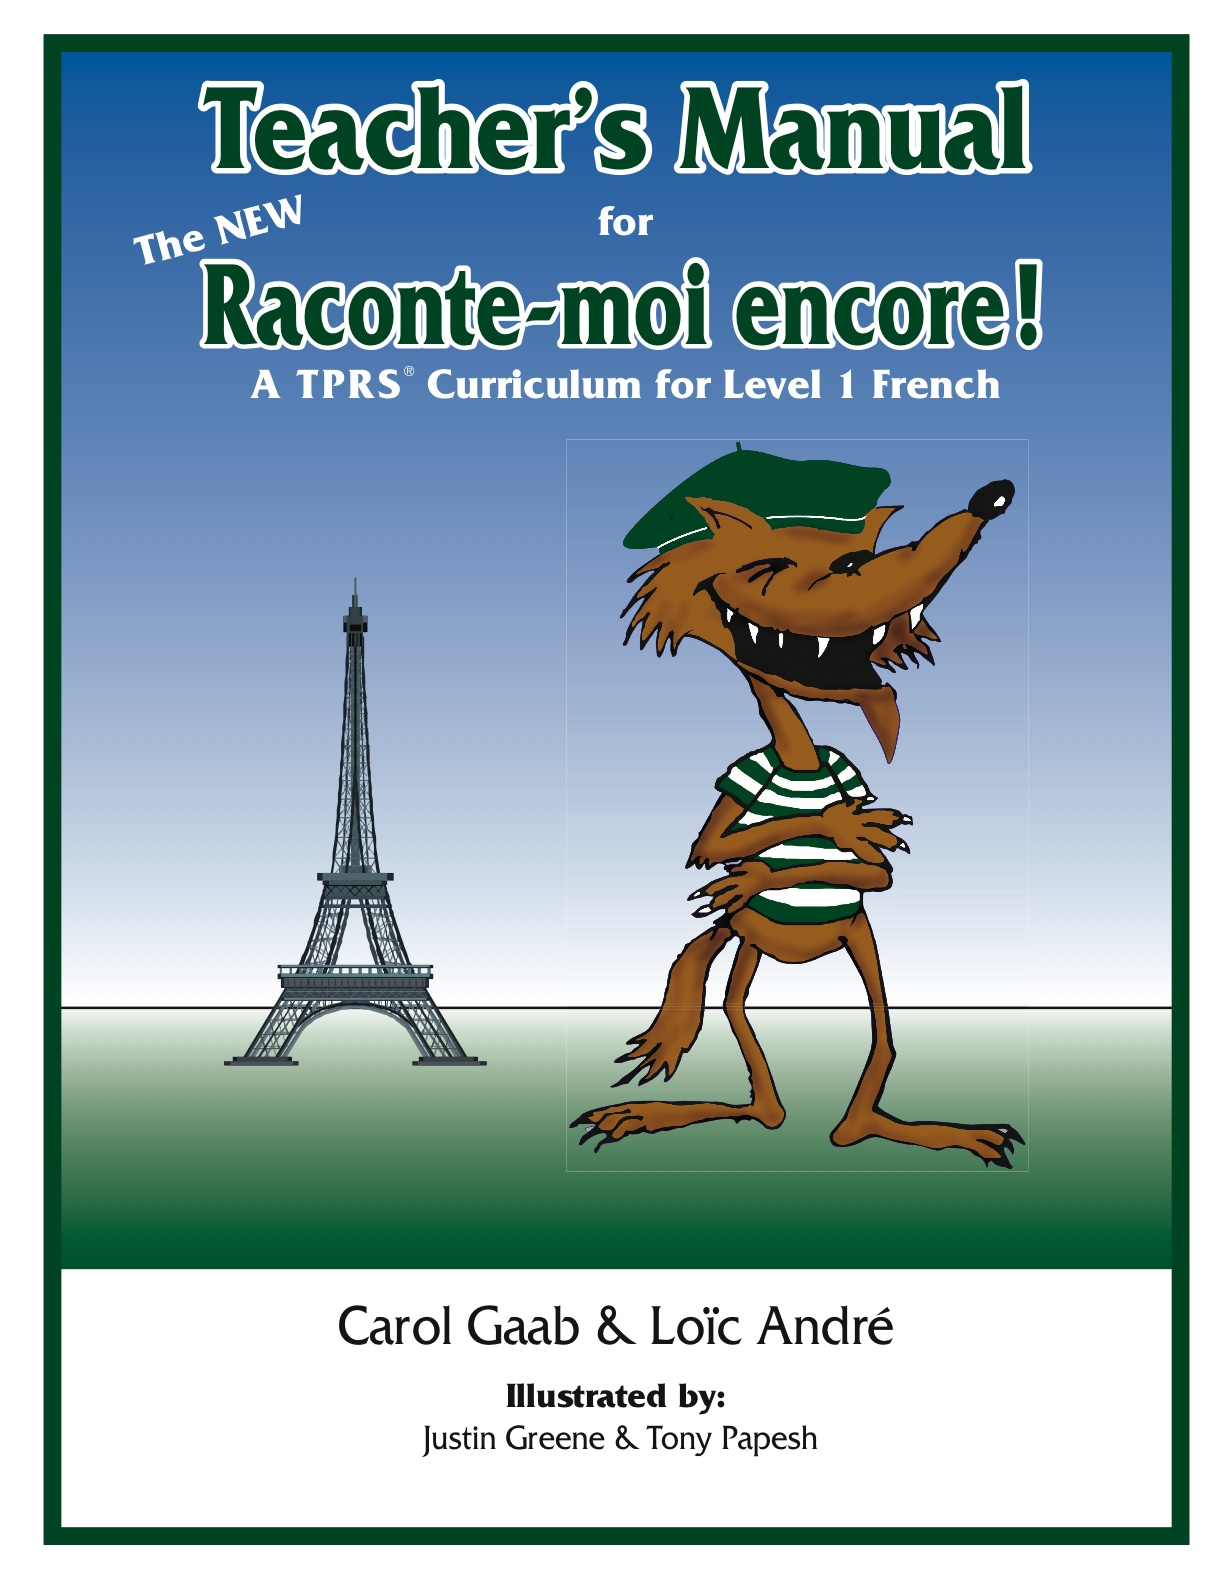 The NEW Raconte-moi encore! Teacher's Manual